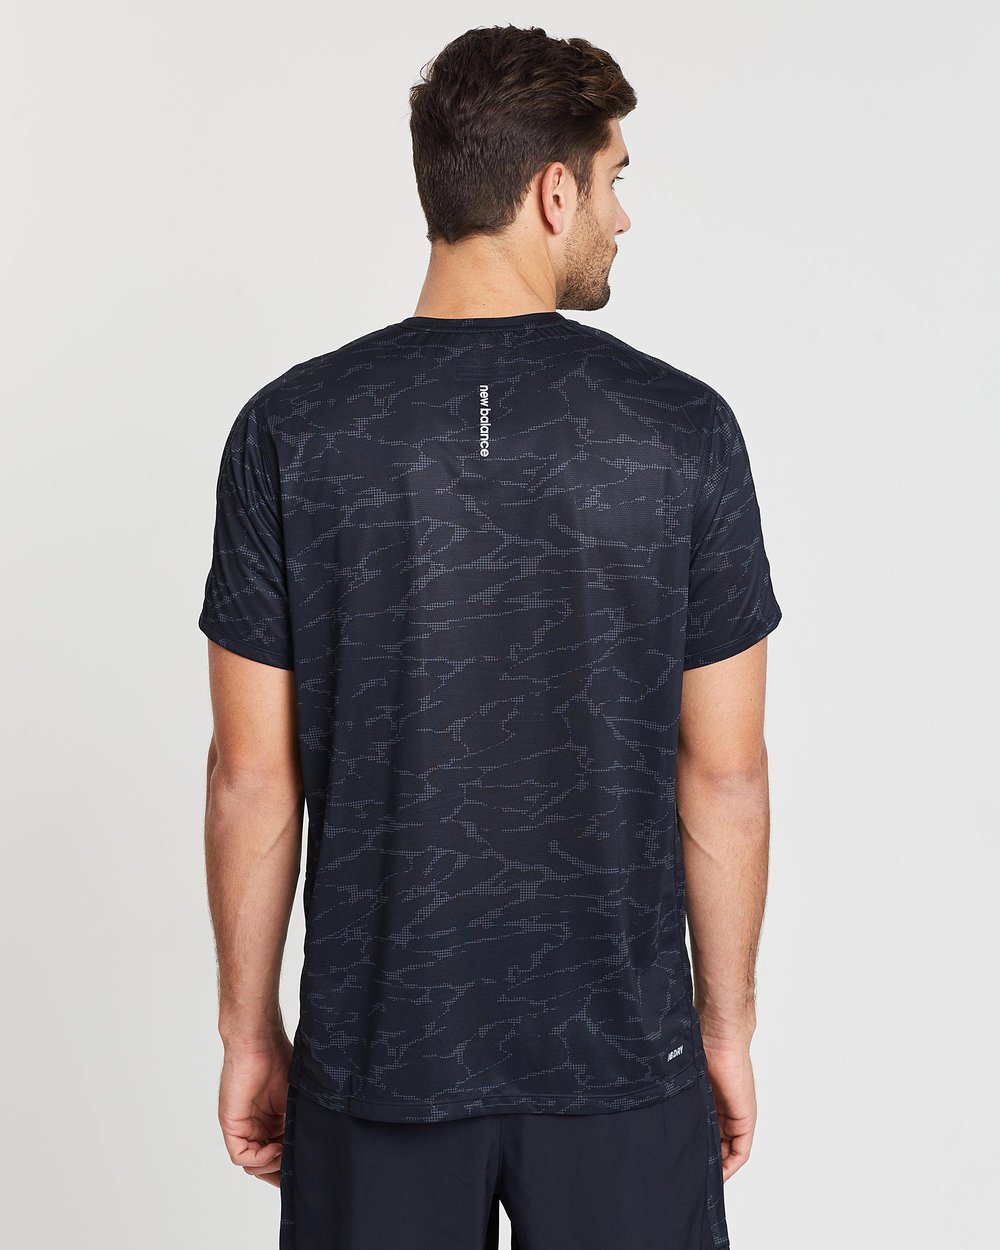 New Balance Men's Printed Accelerate Short Sleeve